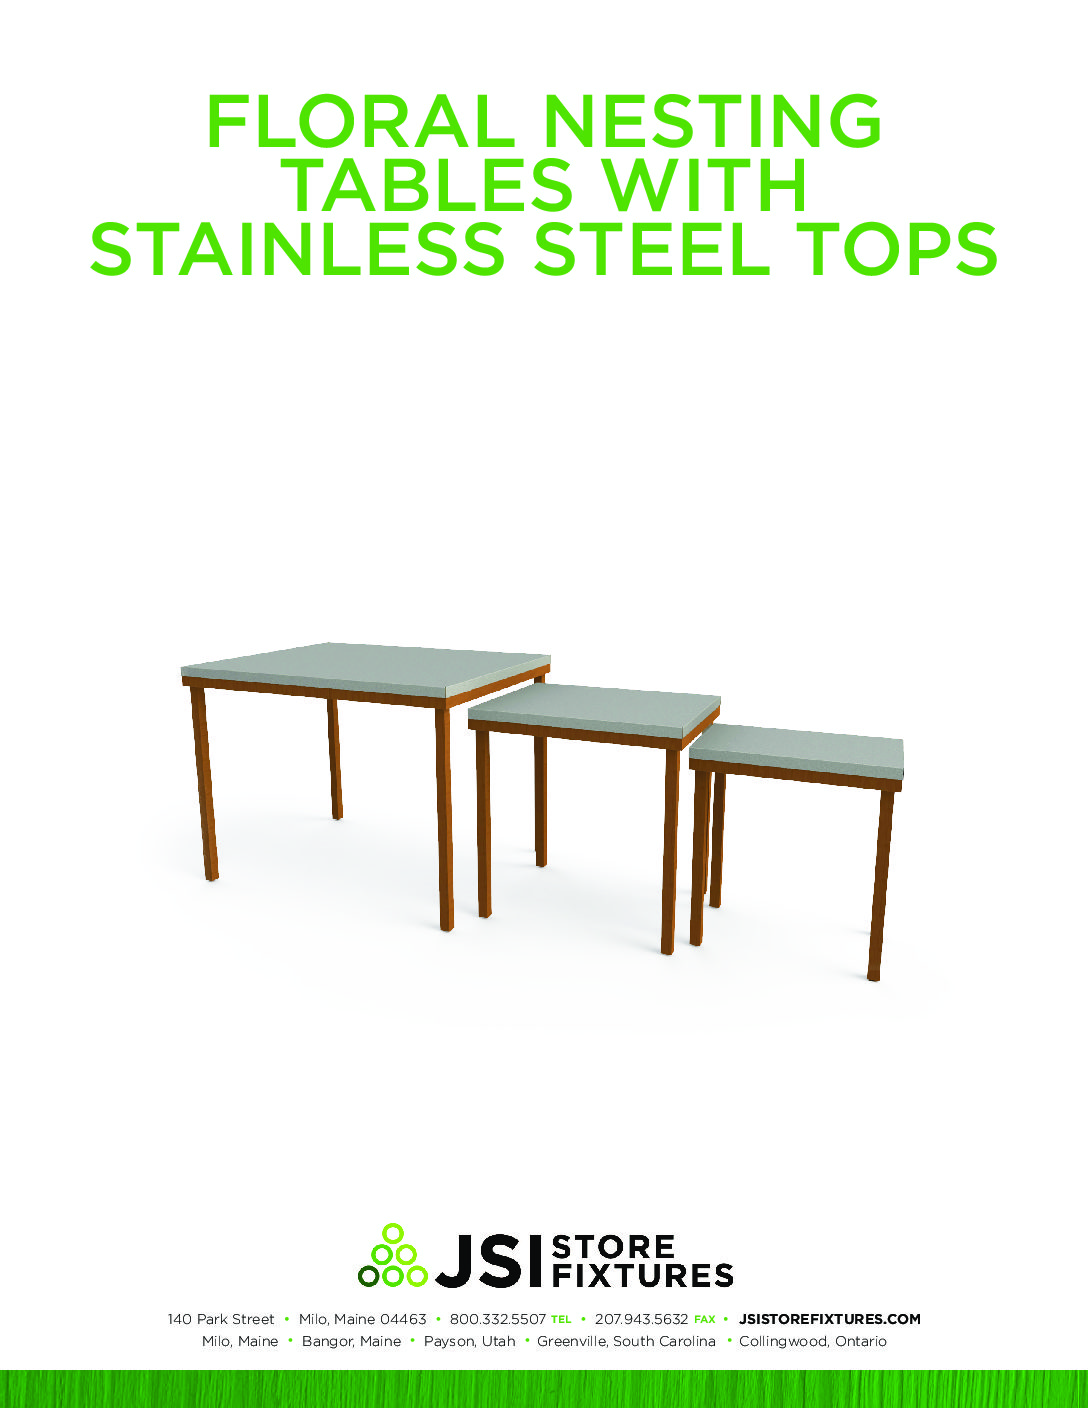 Floral Nesting Tables Spec Sheet